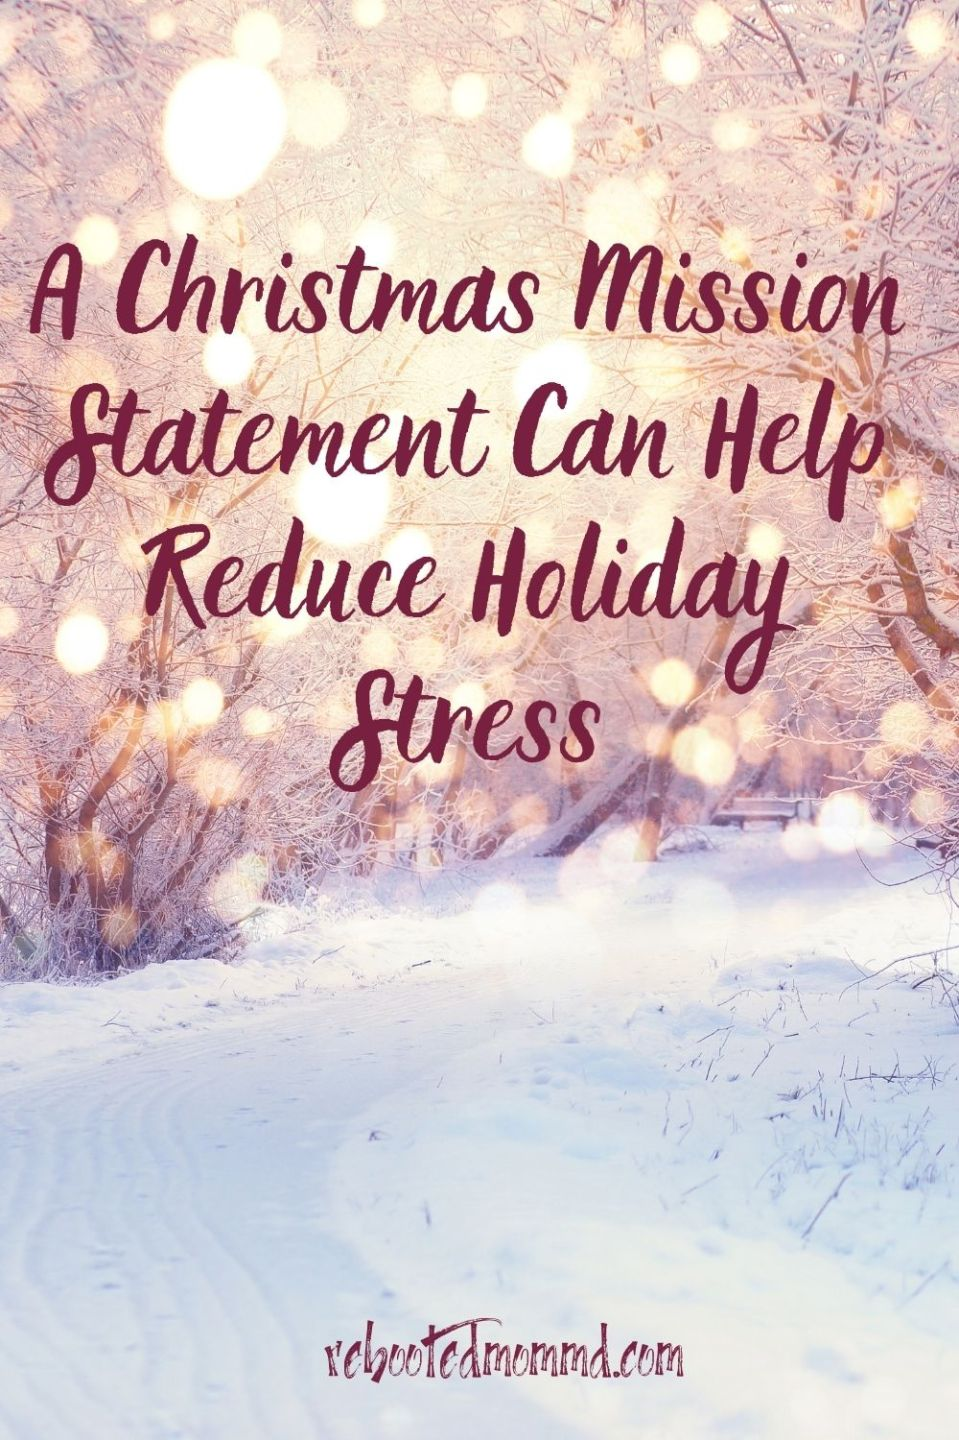 A Christmas Mission Statement Can Help Reduce Holiday Stress